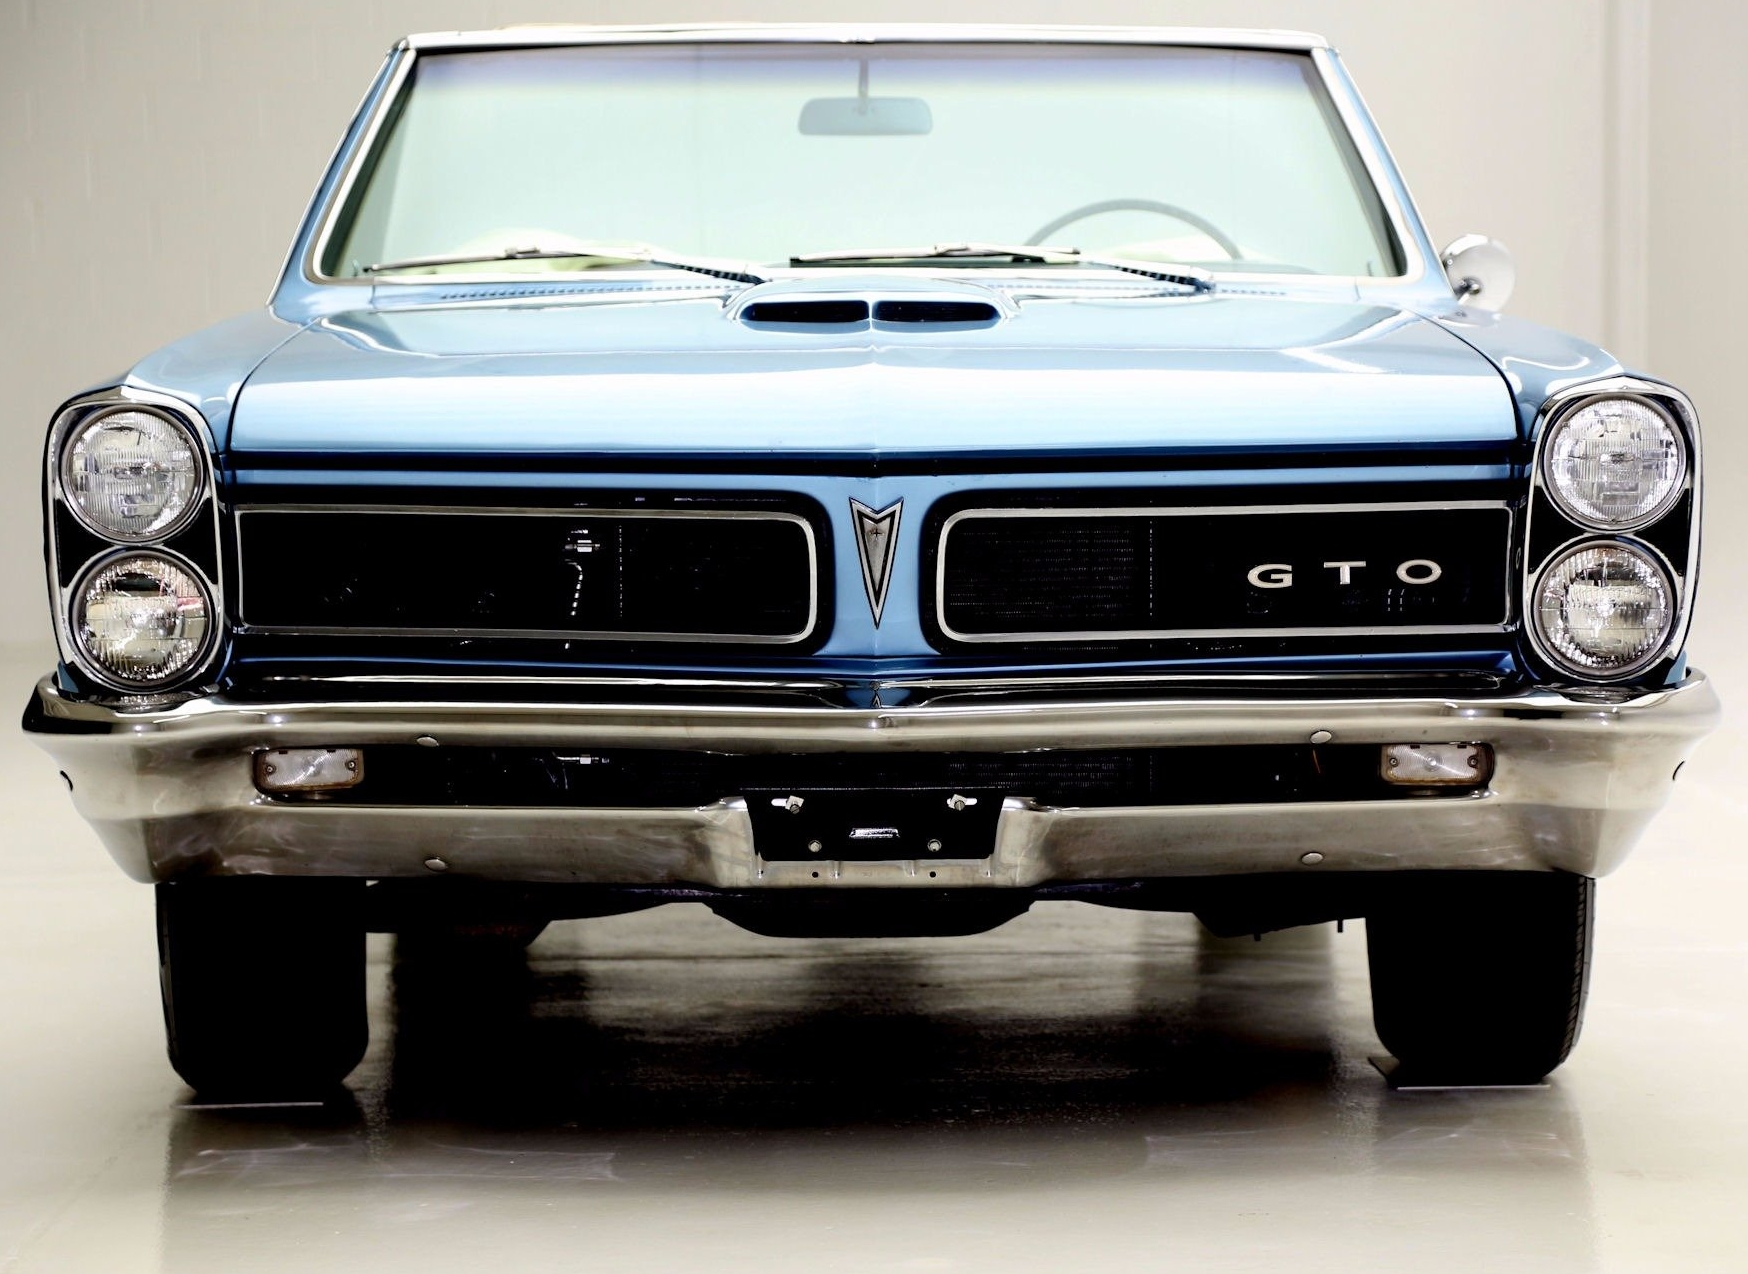 The Gto Was Cornerstone Of Pontiac Performance It A Car That Created Muscle Segment And Hit Bullseye With Wants Needs